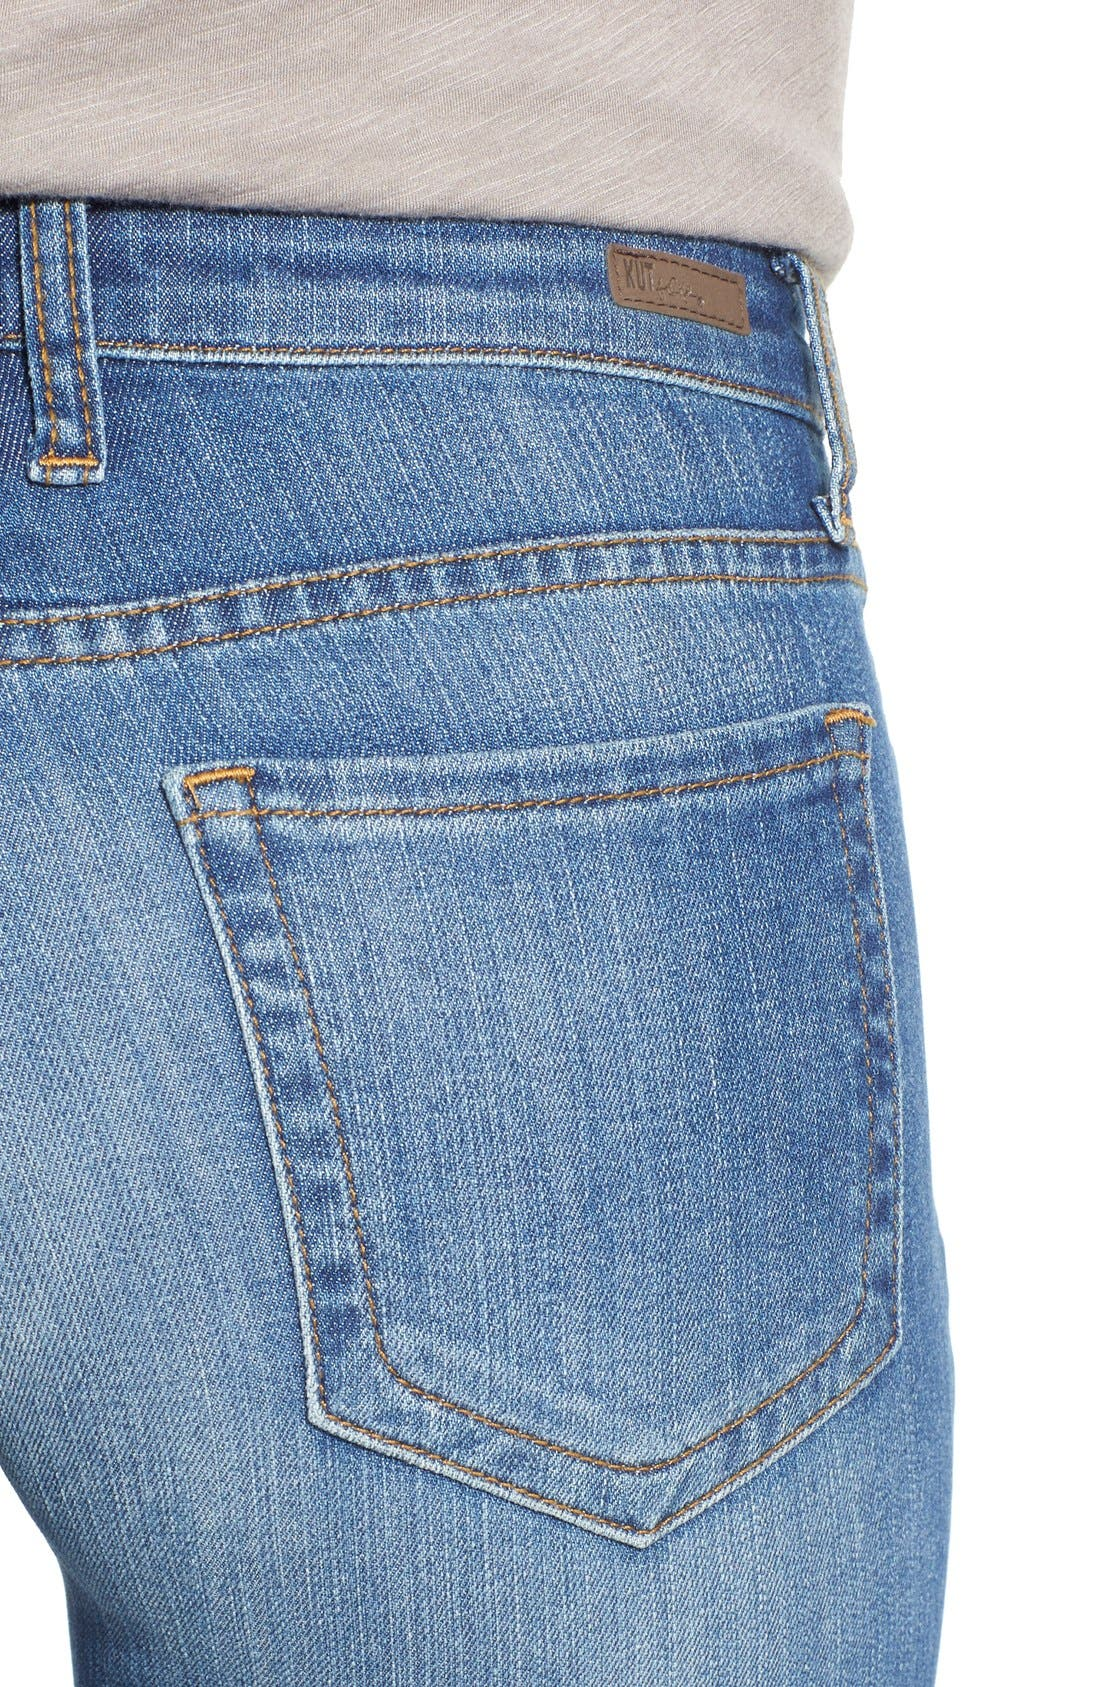 'Diana' Stretch Skinny Jeans,                             Alternate thumbnail 3, color,                             402